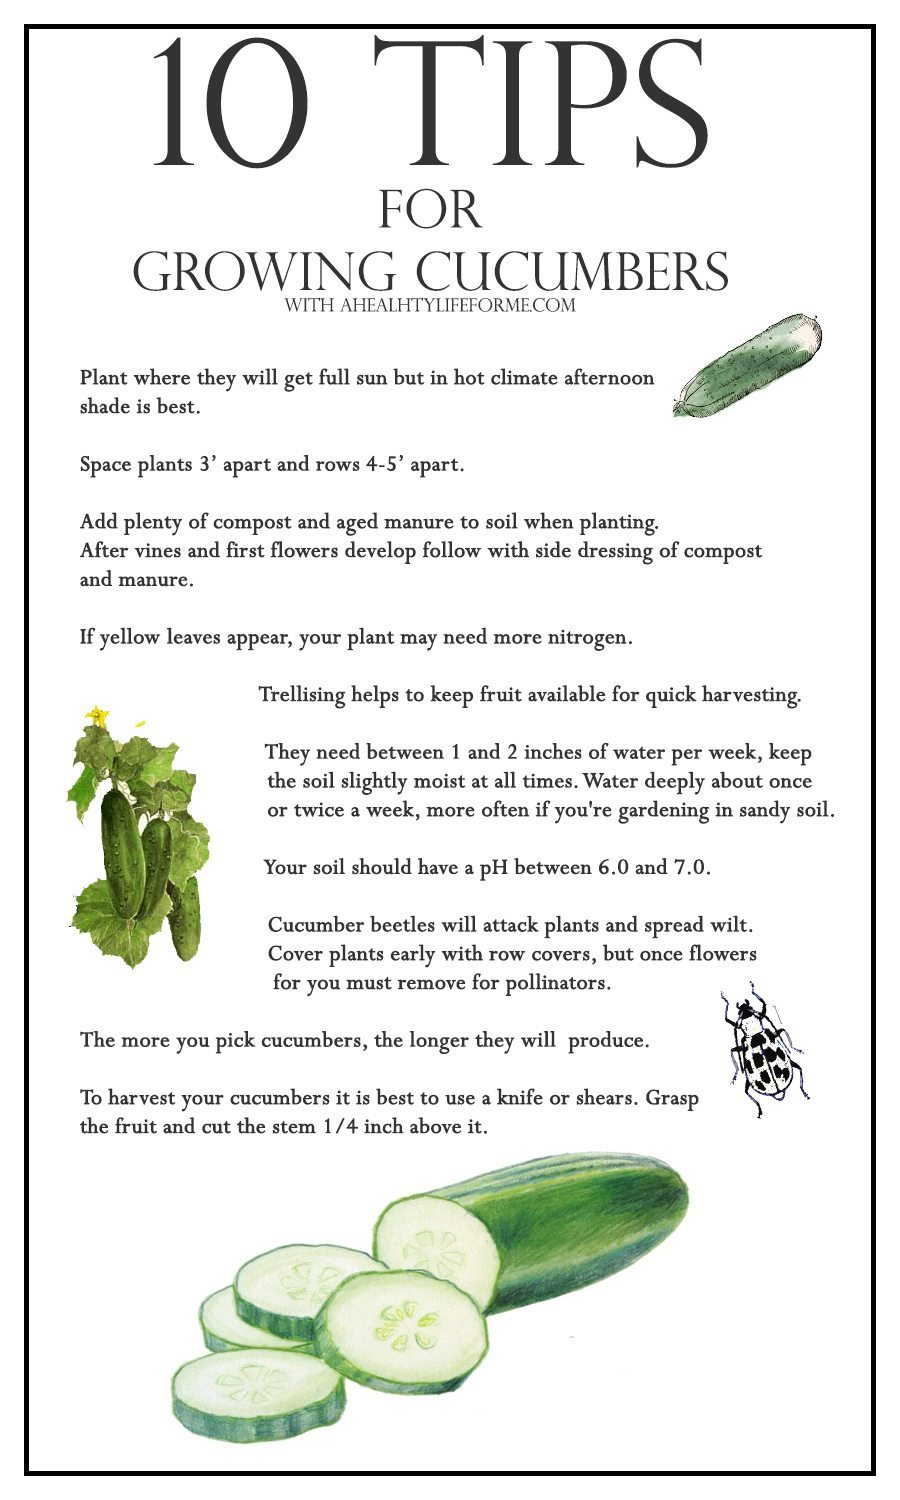 Living Room Decorating Ideas For Apartments For Cheap: 10 Tips For Growing Cucumbers